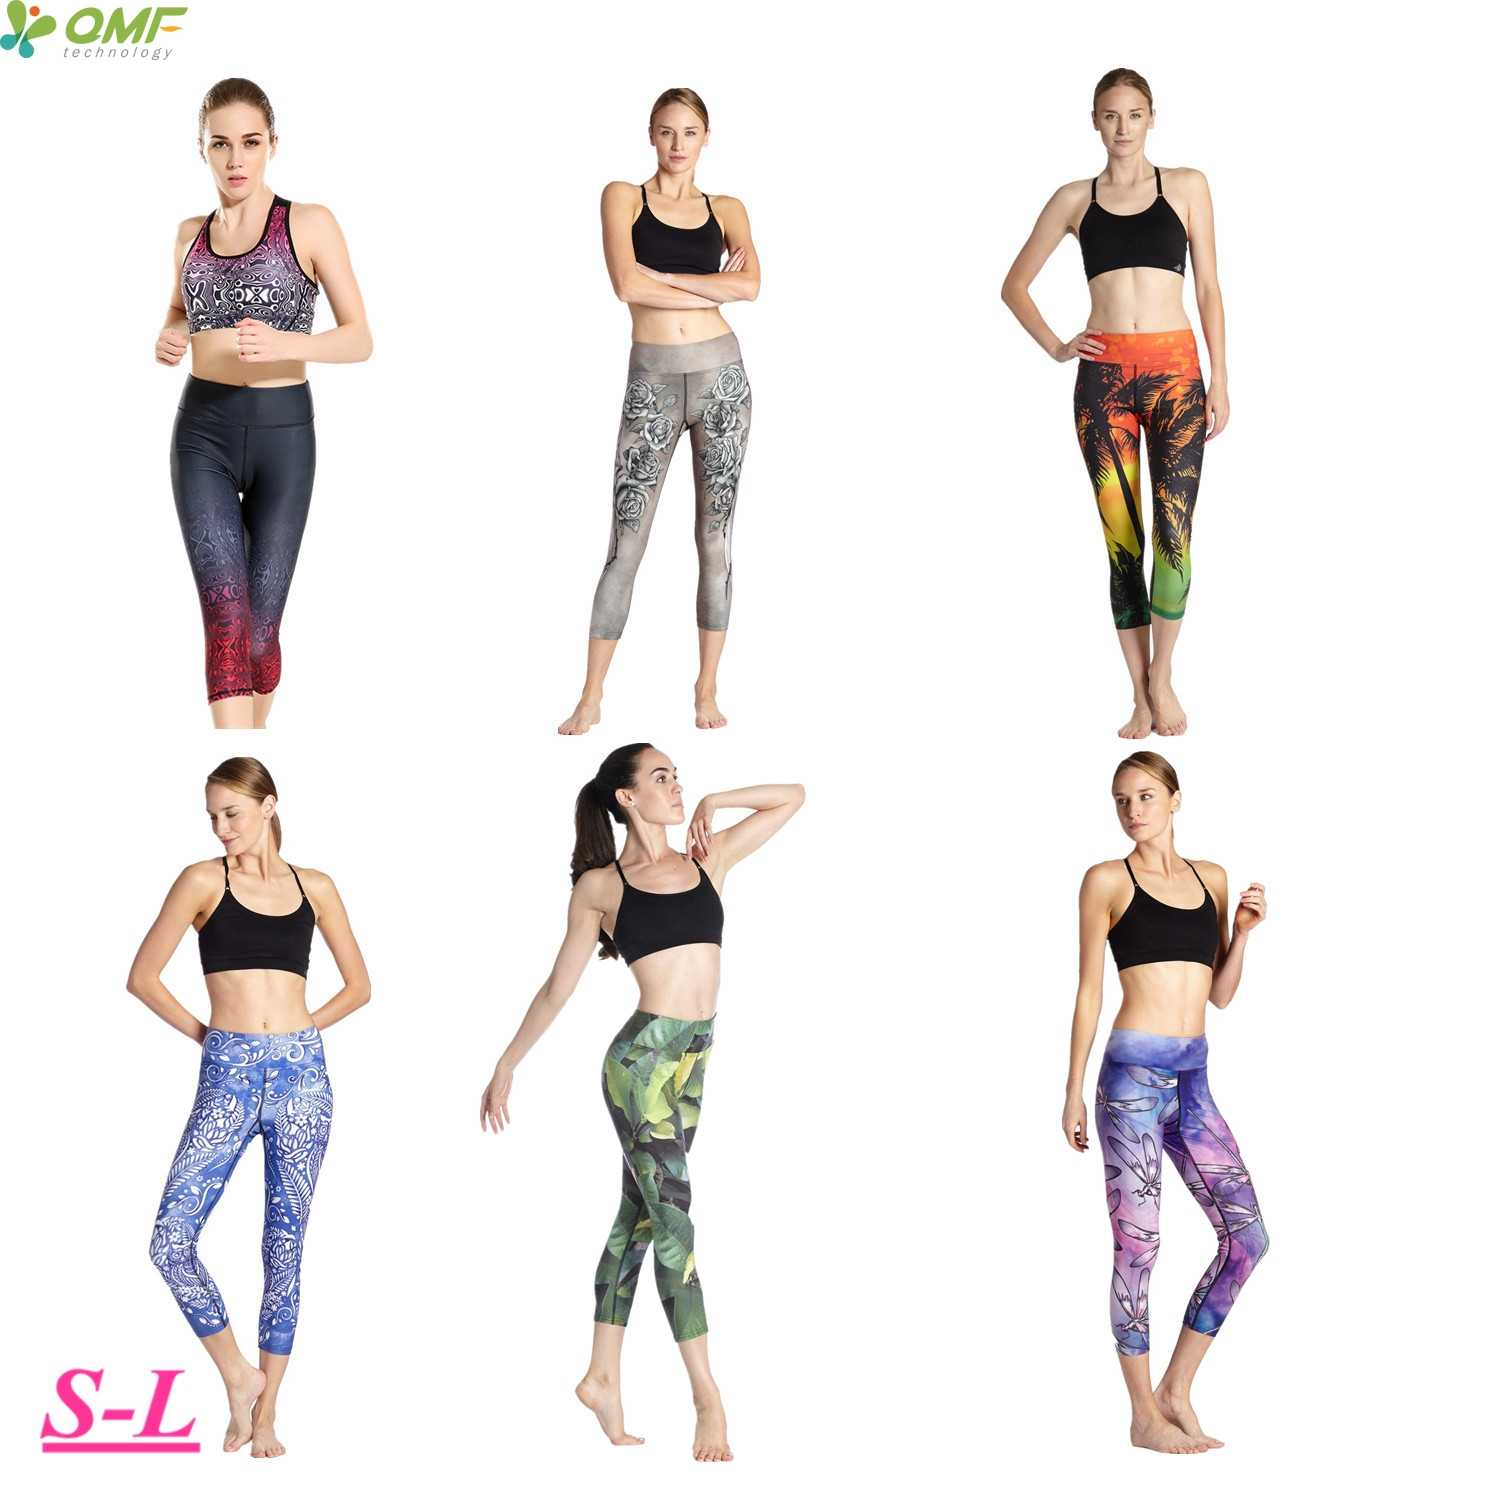 51b6704f35c6f Printed Blossom Rose Running Capris Tights Stretchy Compression Athletic  Sports Leggings Pants Slim Fit 3/